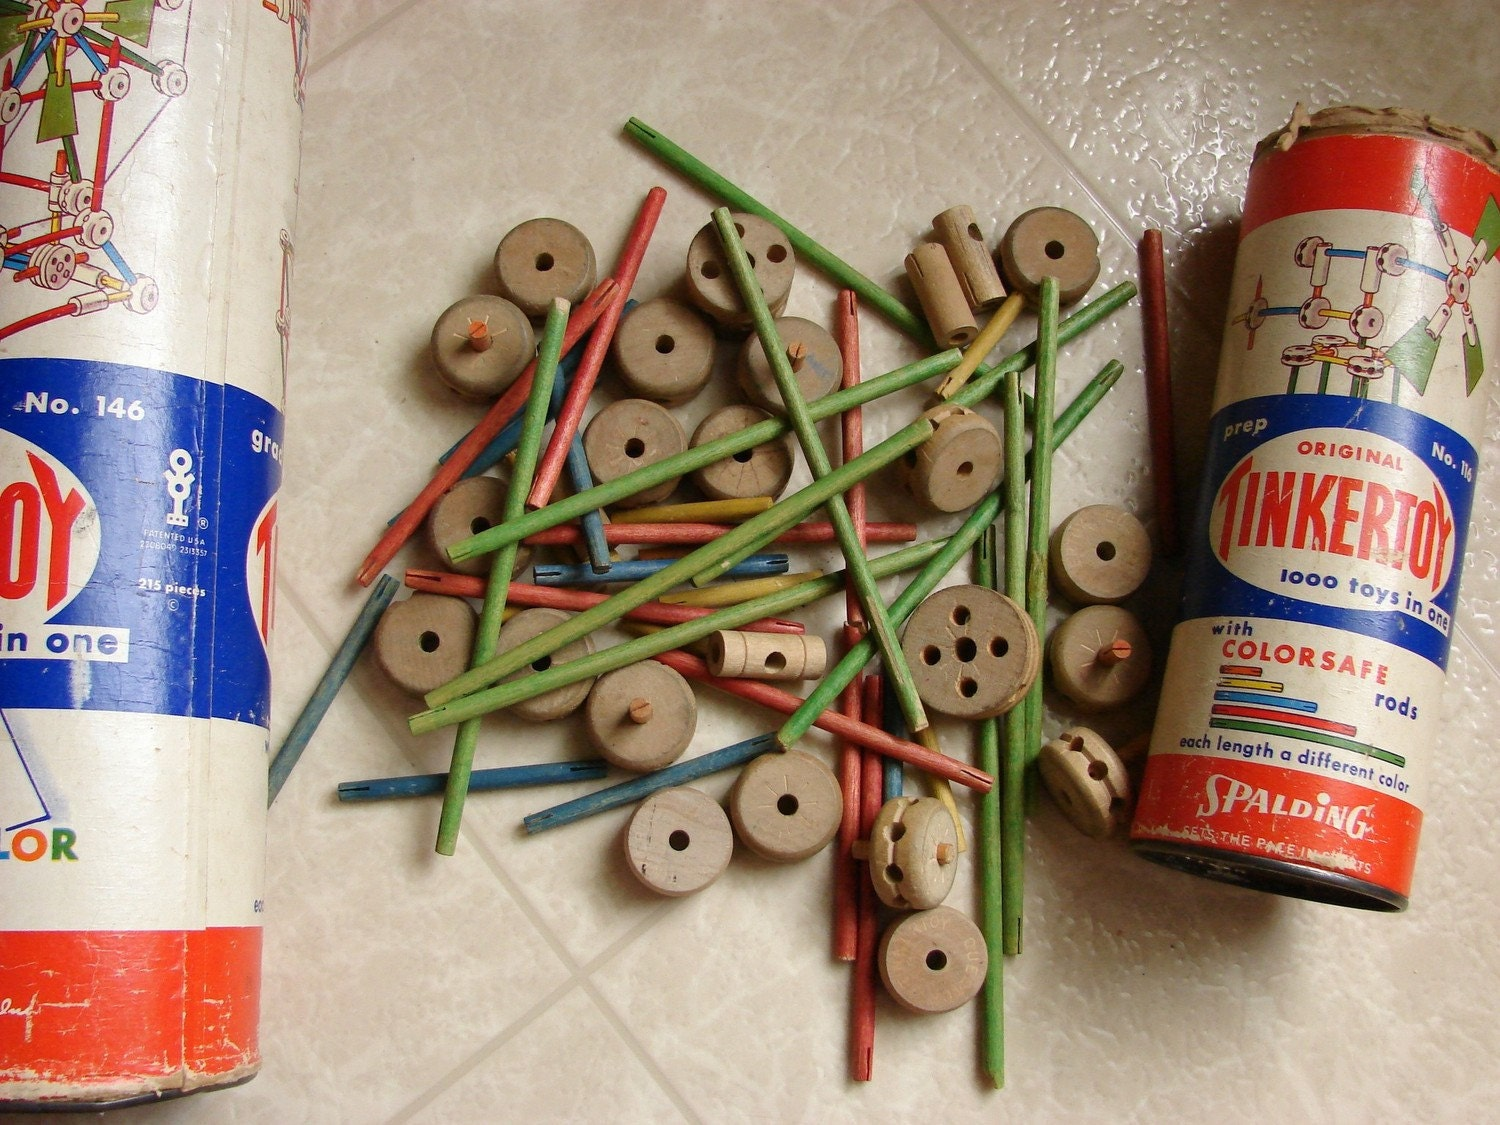 Vintage Toys From The 60s : Tinker toys set original can s toy tinkers